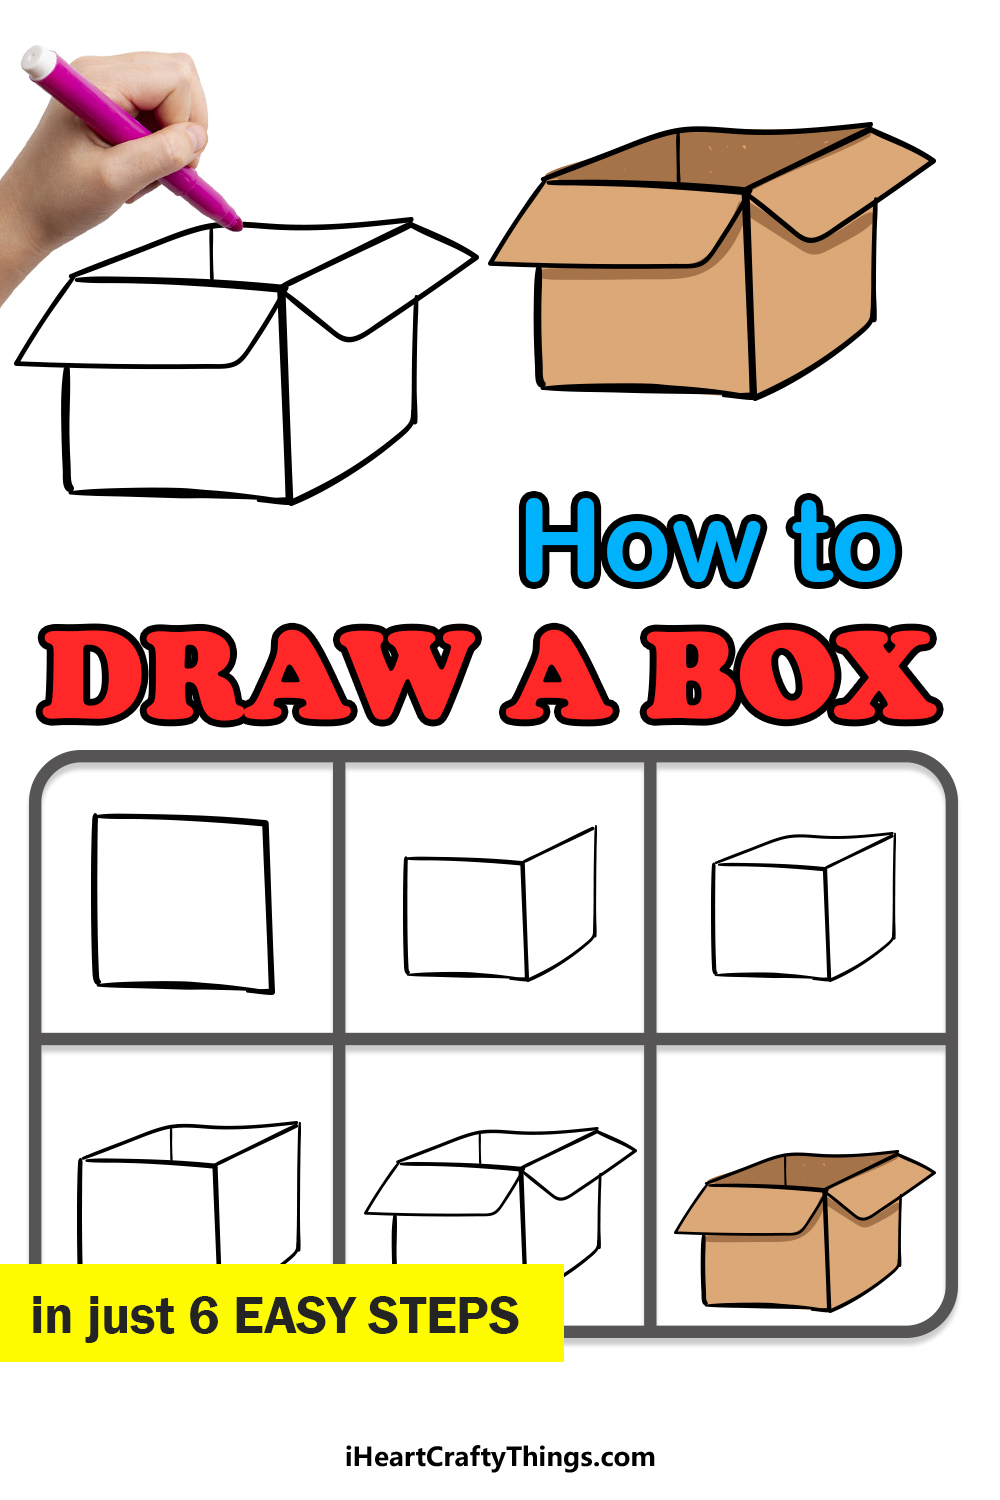 how to draw a box in 6 easy steps